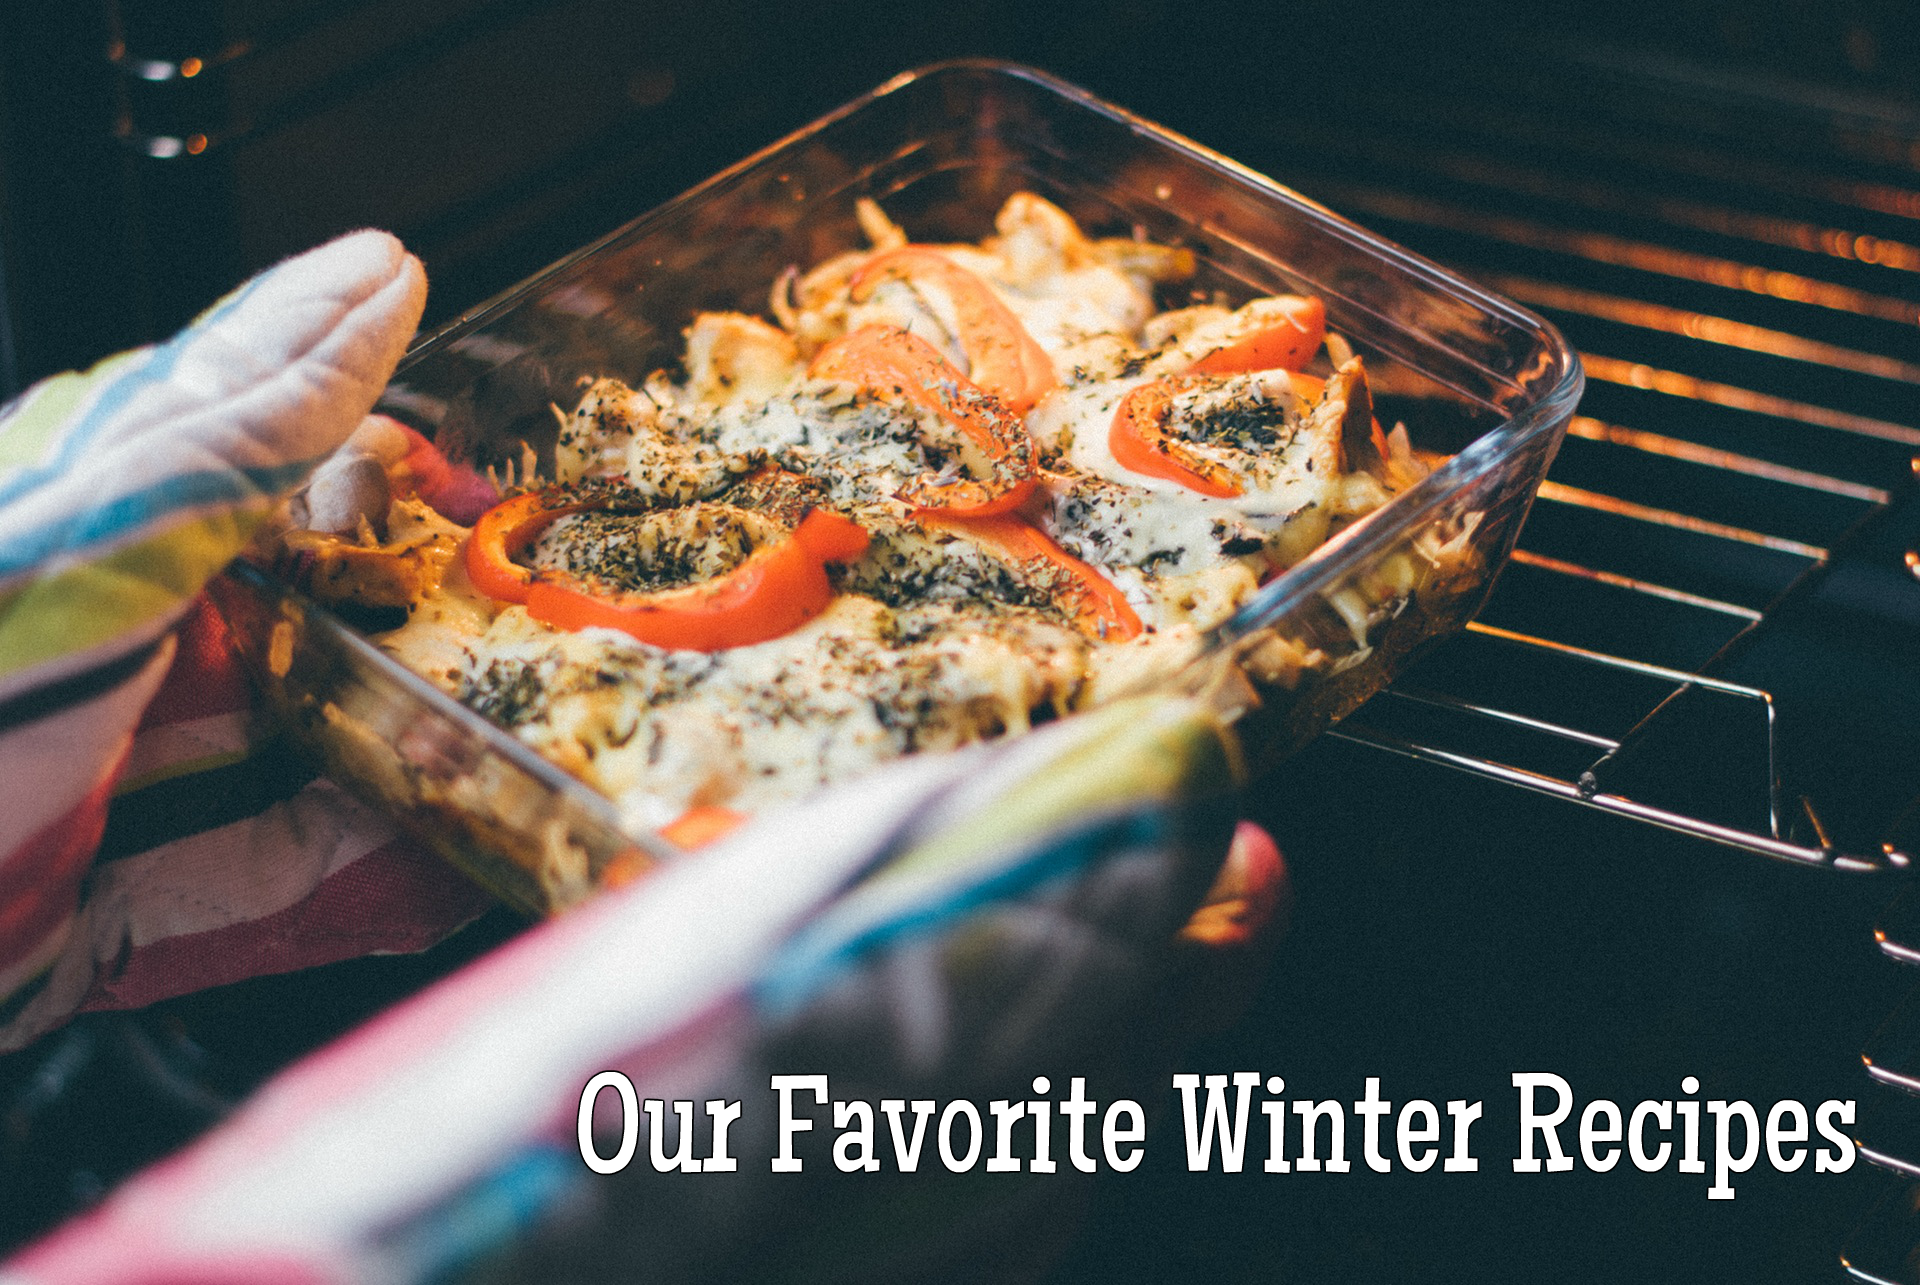 Our Favorite Winter Recipes